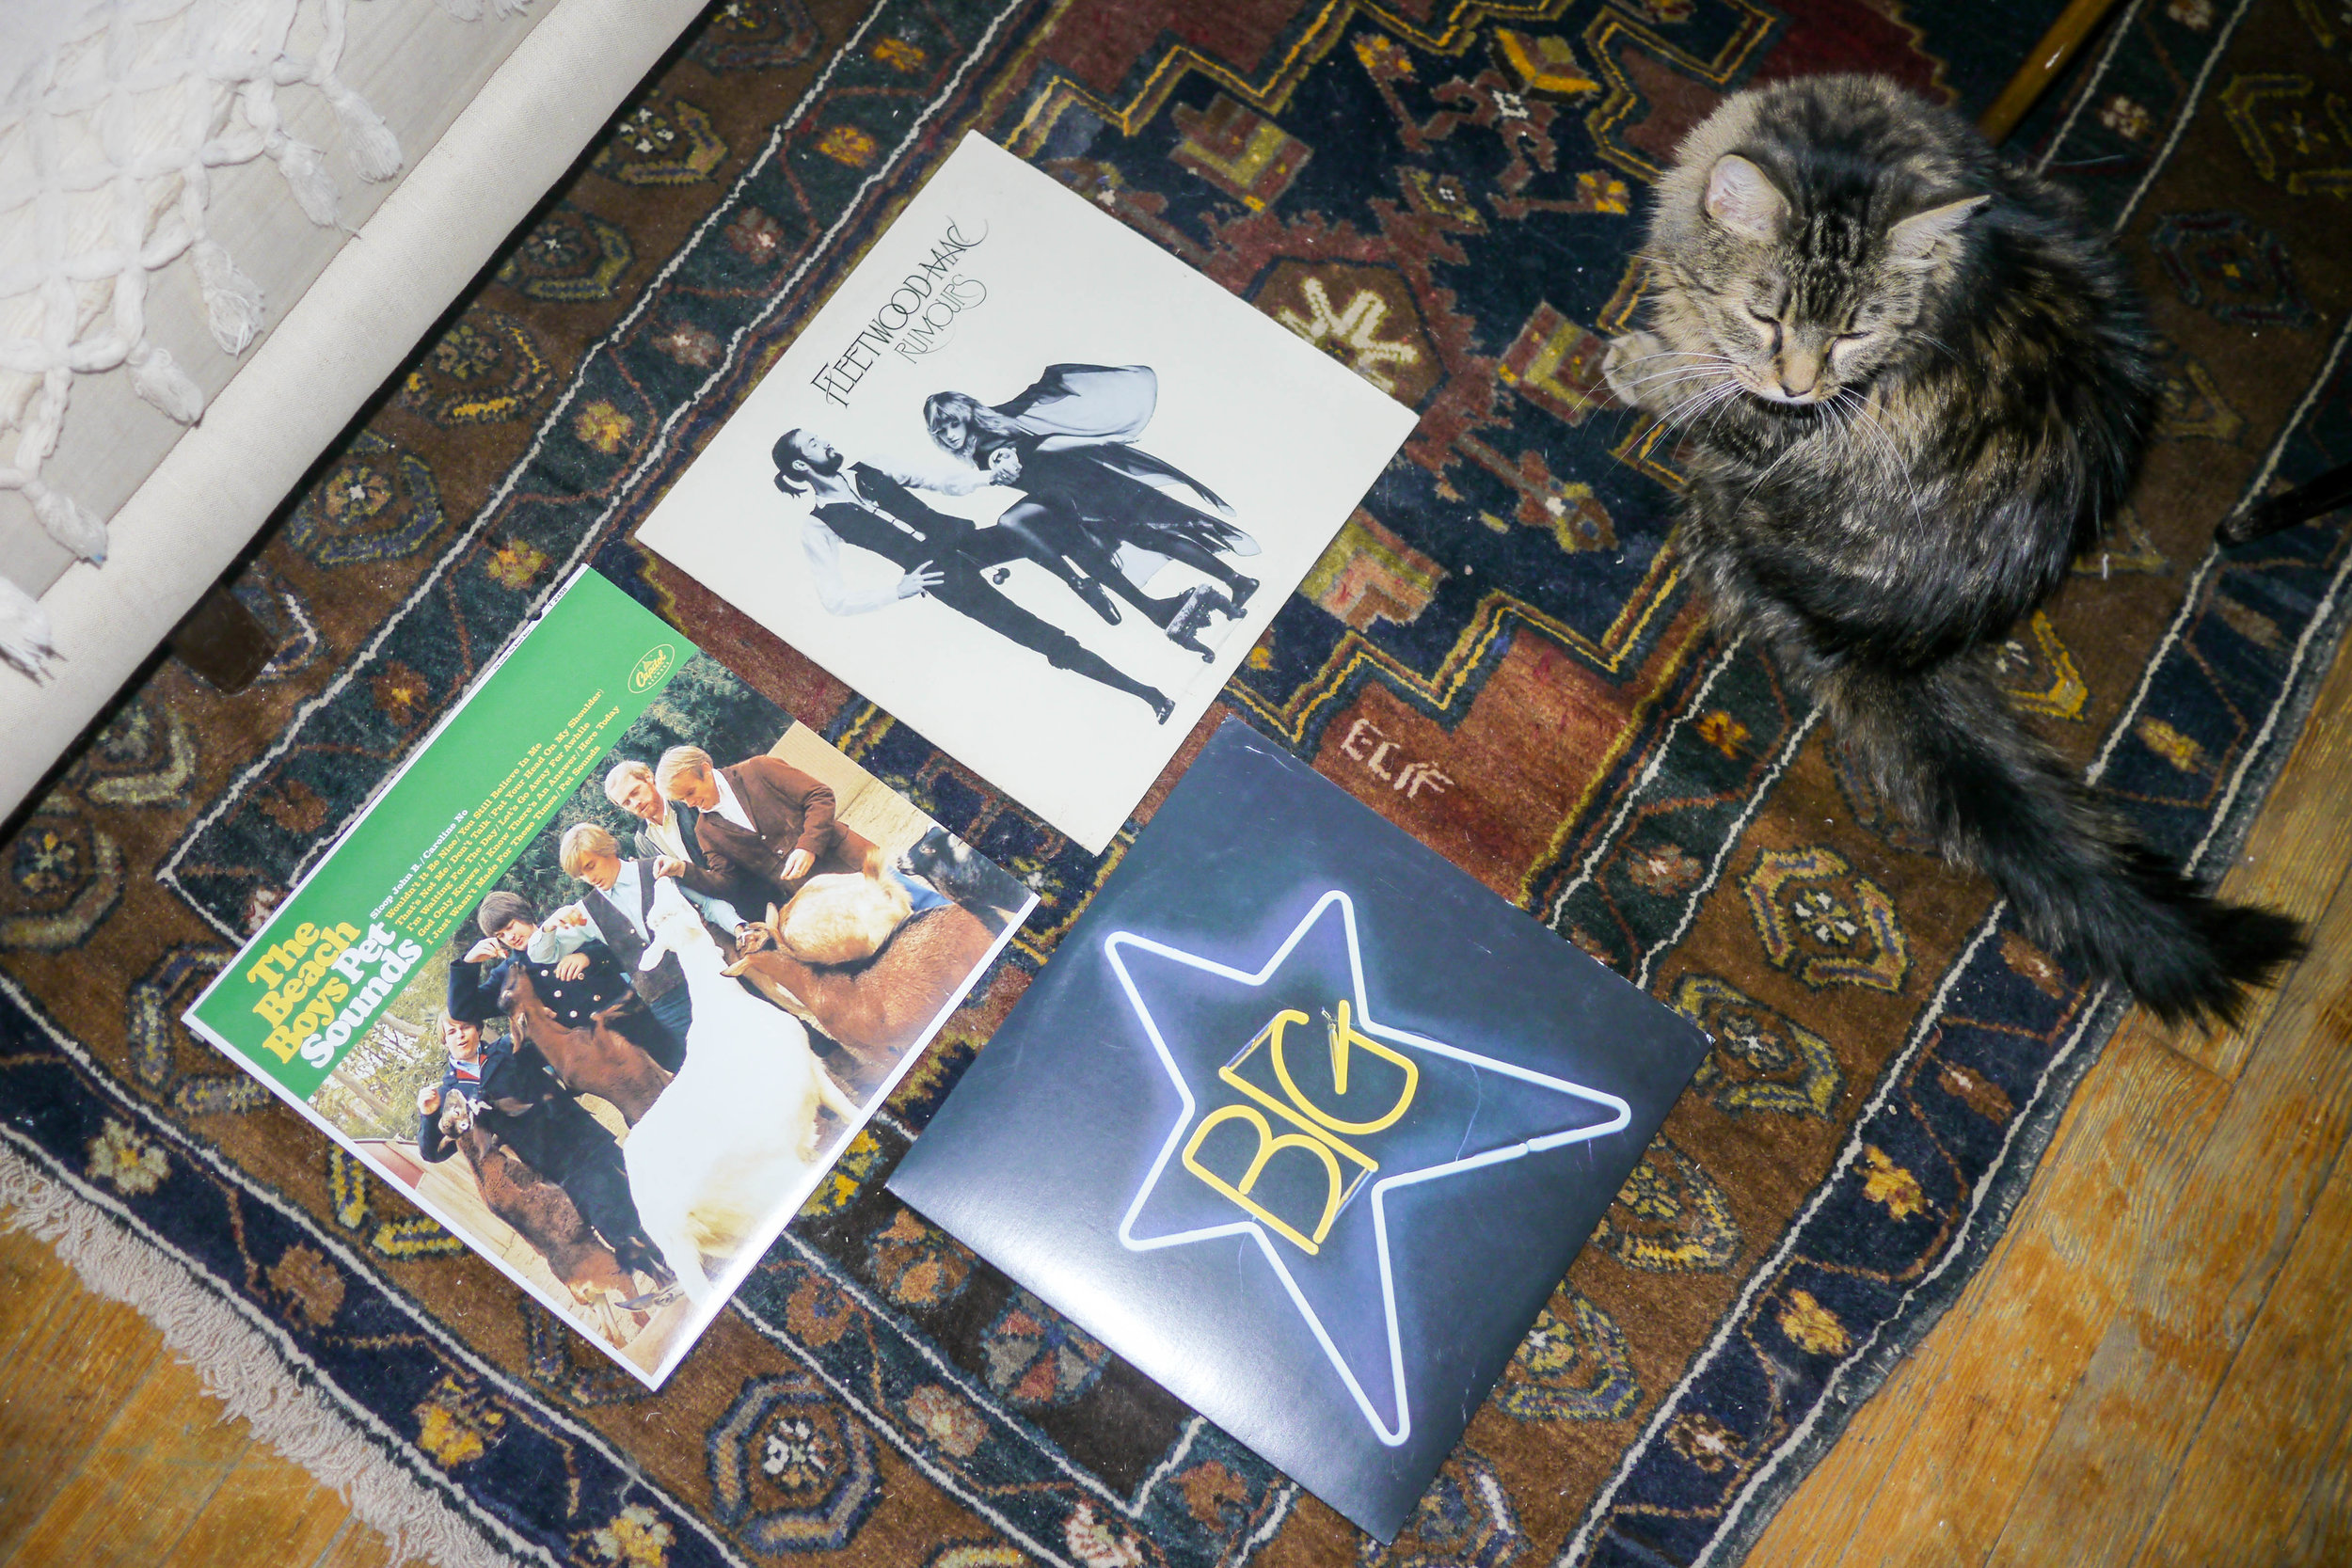 Nicole's favorite records